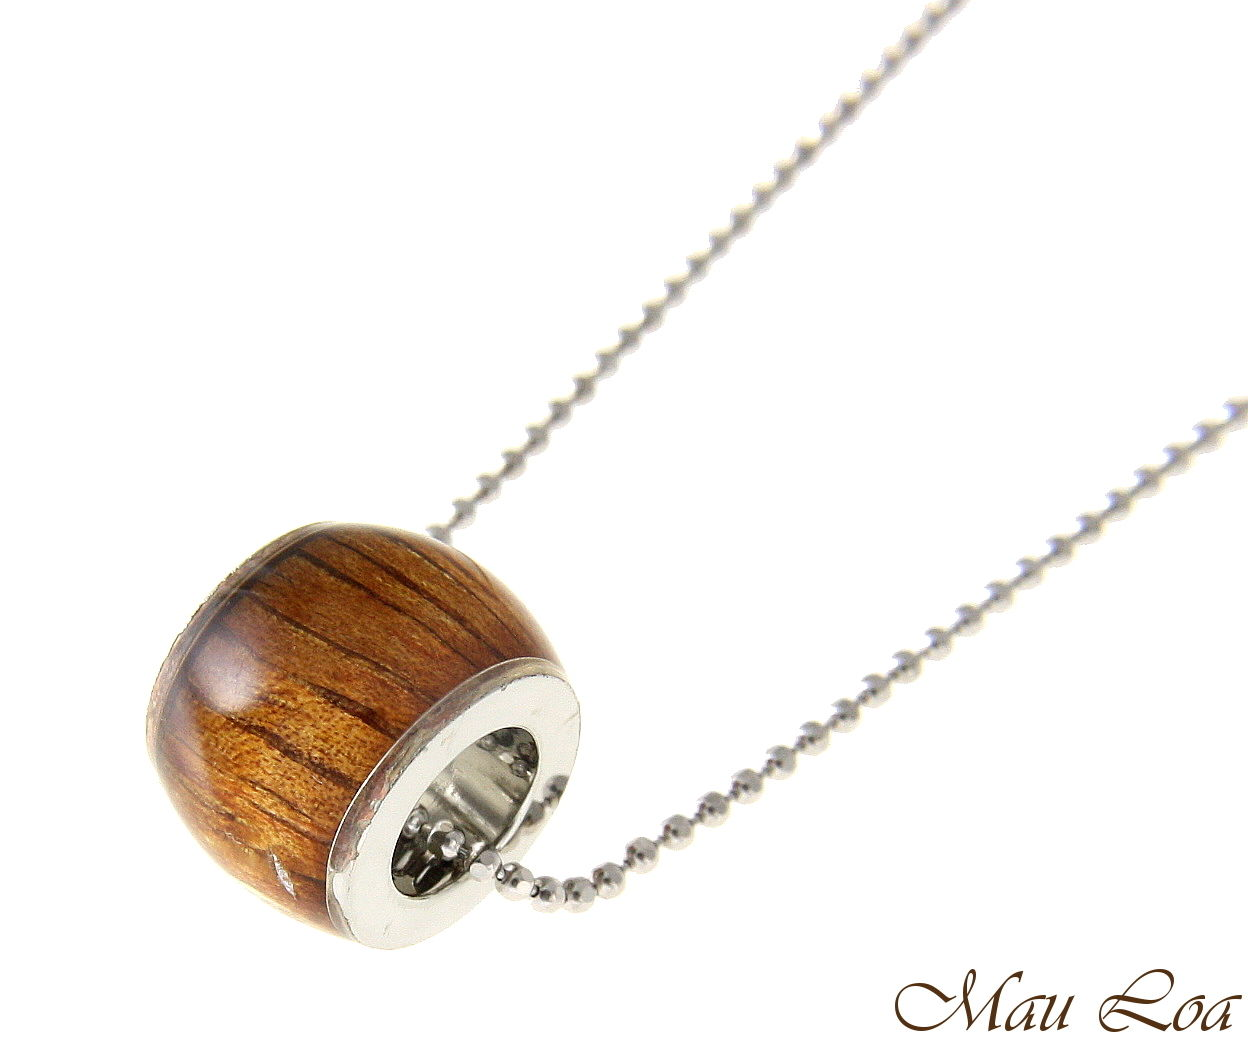 Koa Wood Hawaiian Barrel Tube Rhodium Silver Plated Brass Slide Pendant